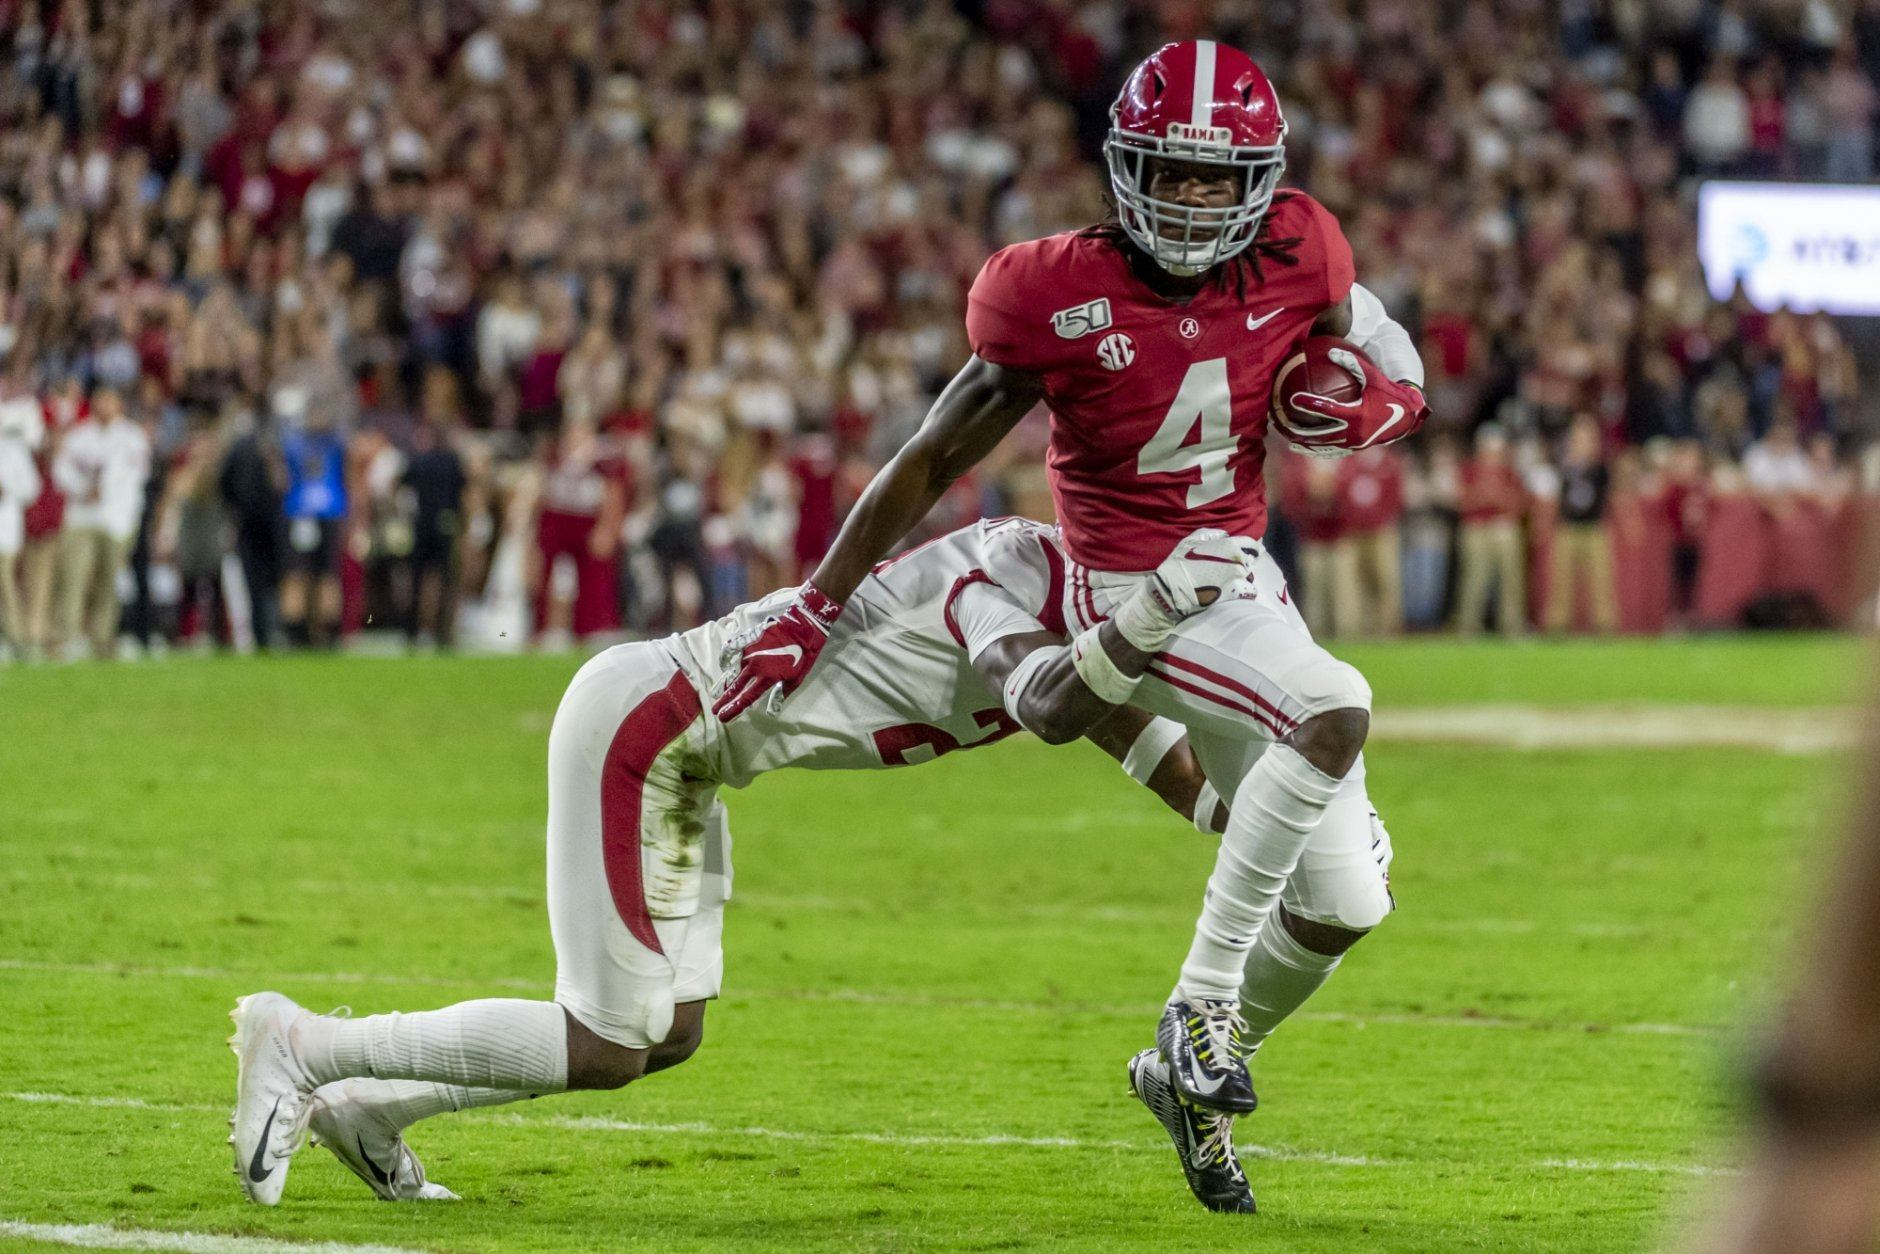 <p><strong>No. 3 Alabama (8-0):</strong> Beat LSU, Win SEC title</p> <p>It doesn't matter that the Crimson Tide are in third, instead of second, in the initial rankings. Alabama's season ultimately comes down to this weekend's home matchup with LSU. Lose that, and it's hard to see how they get in. Win, and even an Iron Bowl loss wouldn't be deadly. They could still take down Georgia or Florida big in the title game and get in with one loss.</p>